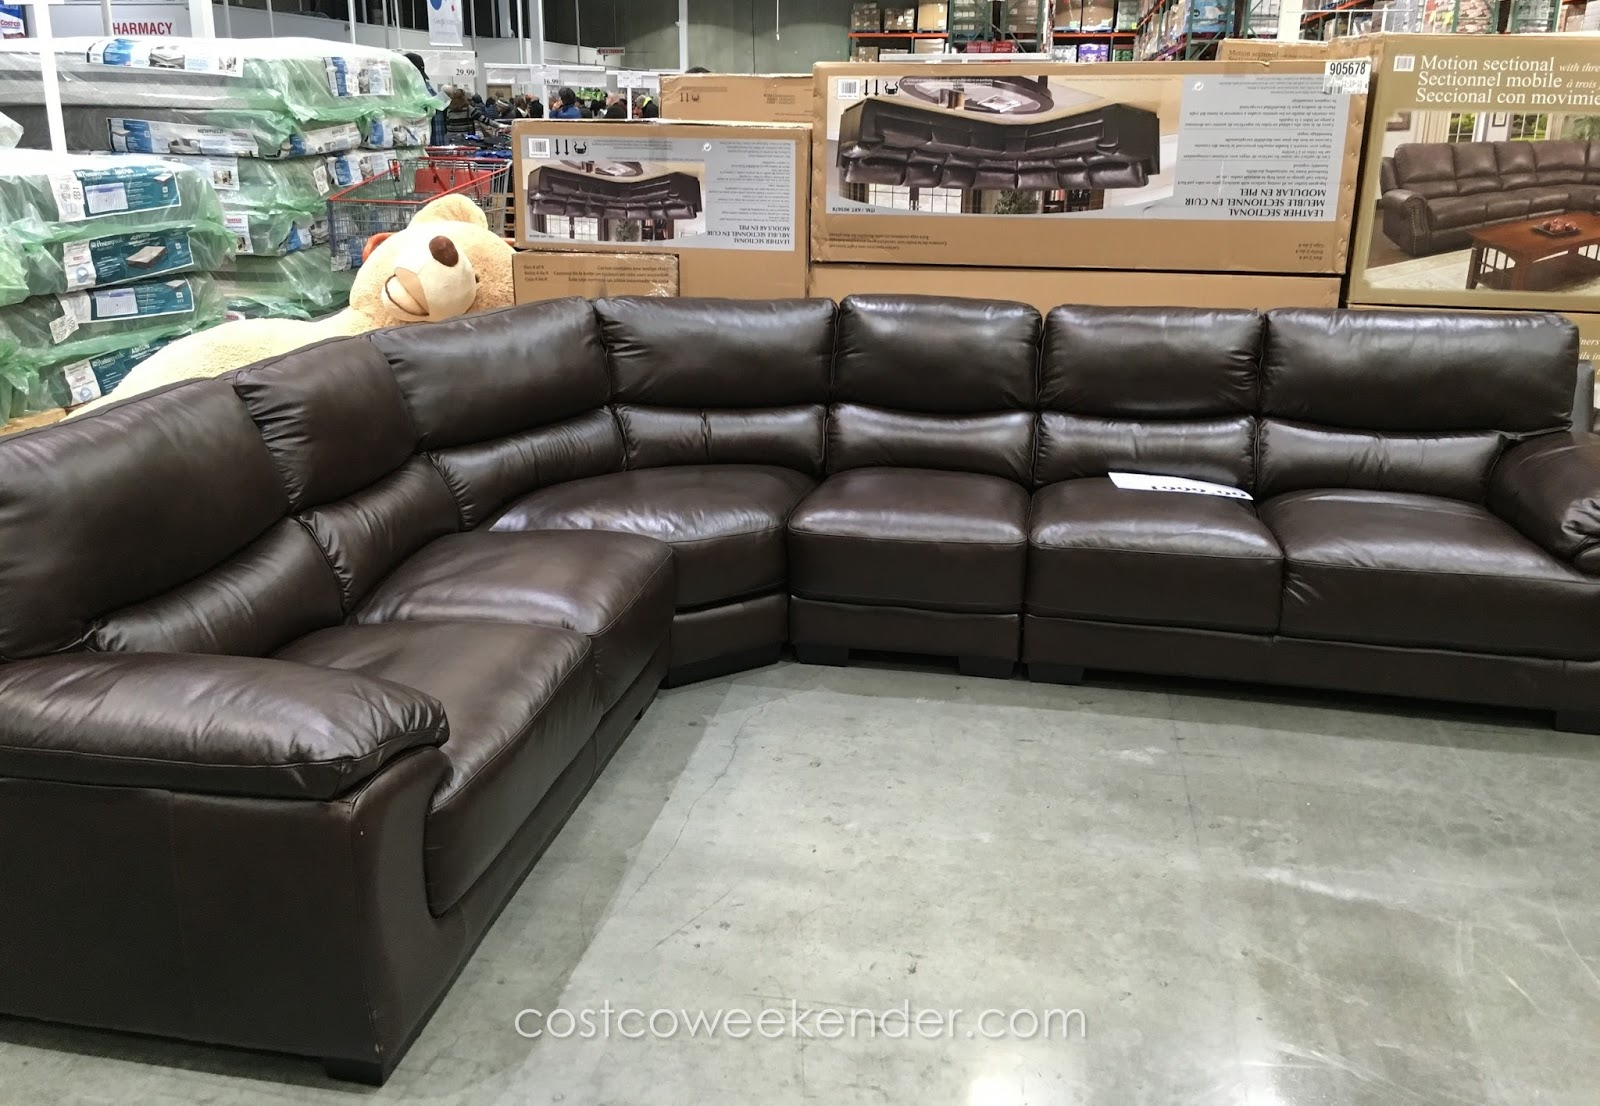 Costco Fabric Reclining Sofa Cooper Leather Marks And Cohen Colton Sectional Weekender